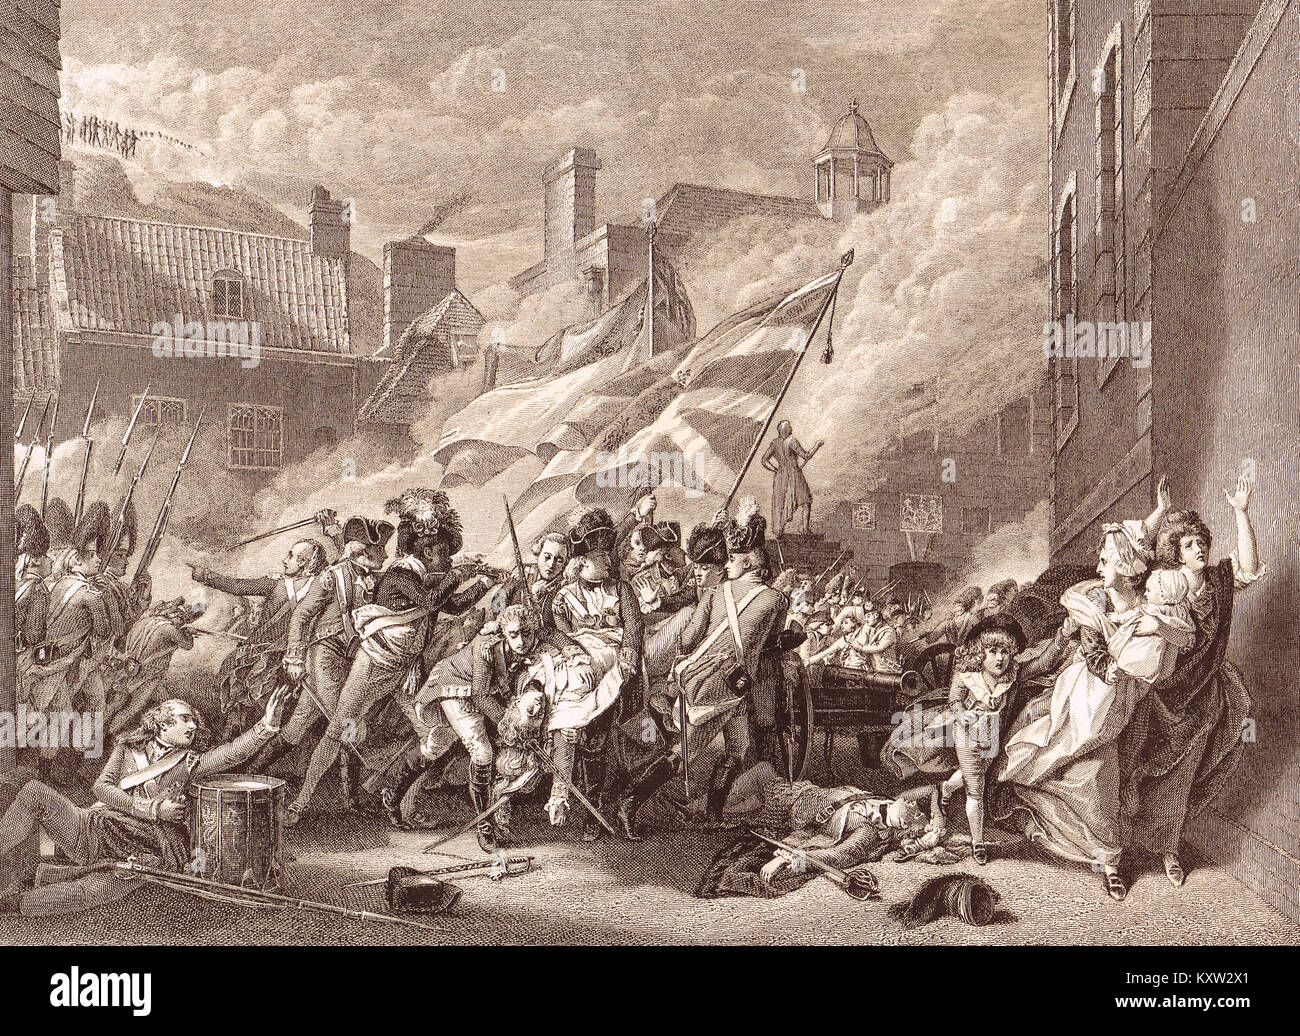 Death of Major Peirson, 6 January 1781, Battle of Jersey - Stock Image